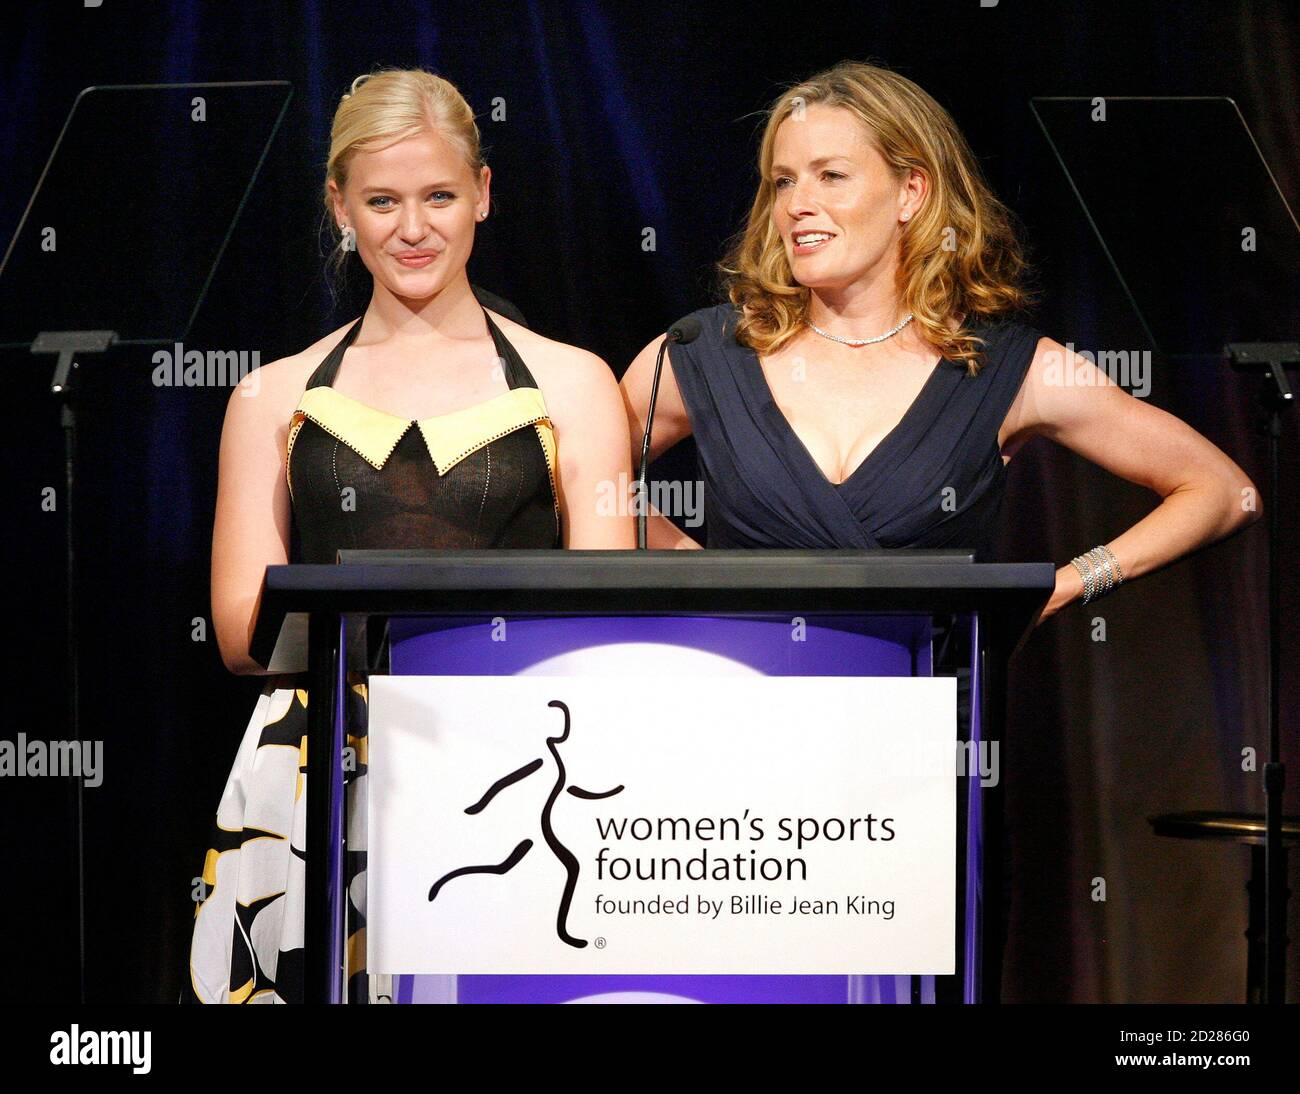 Cast Members From The Movie Gracie Elisabeth Shue R And Carly Schroeder Speak On Stage At The Billies Charity Gala In Beverly Hills April 11 2007 The Event Presented By The Women S